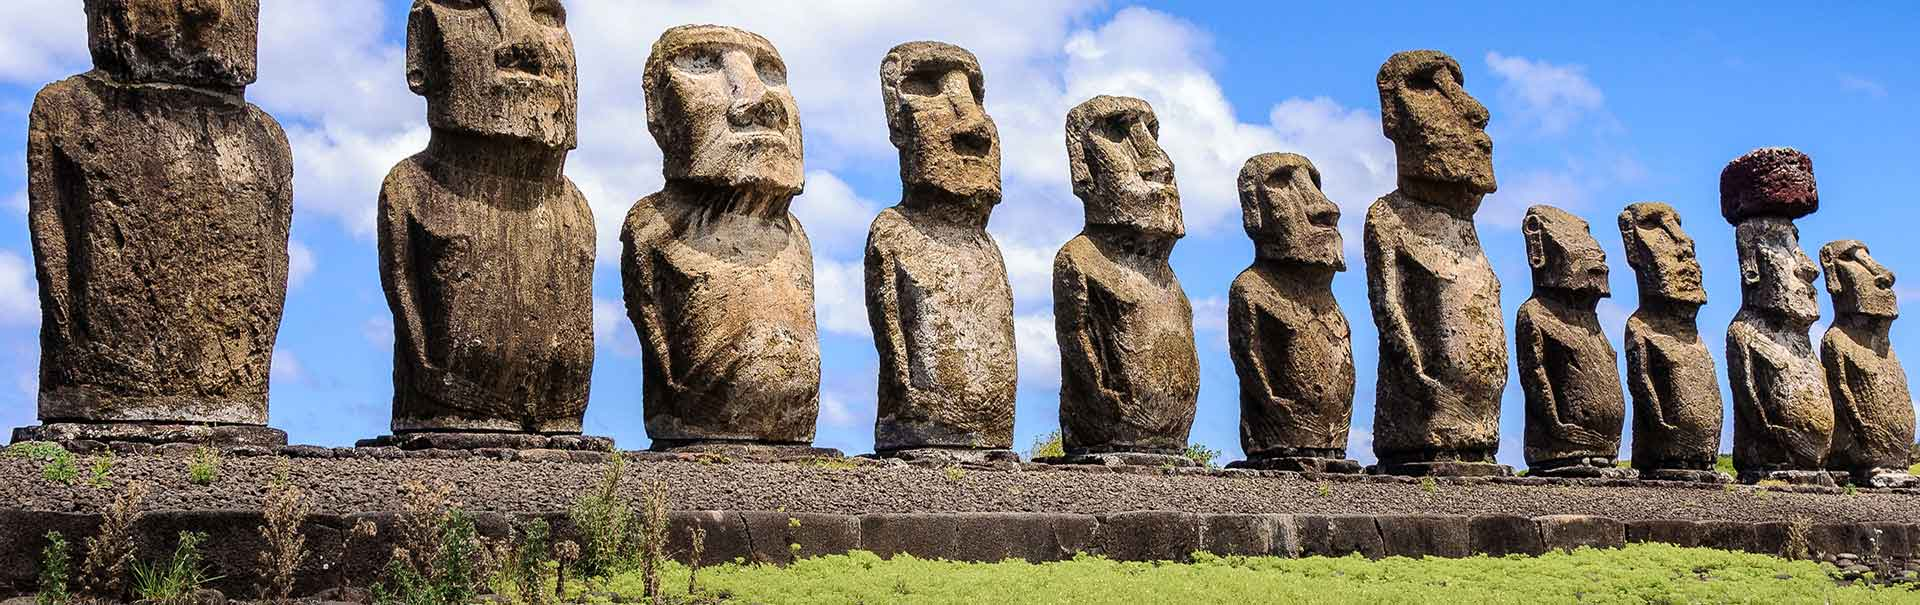 Easter Island statues.